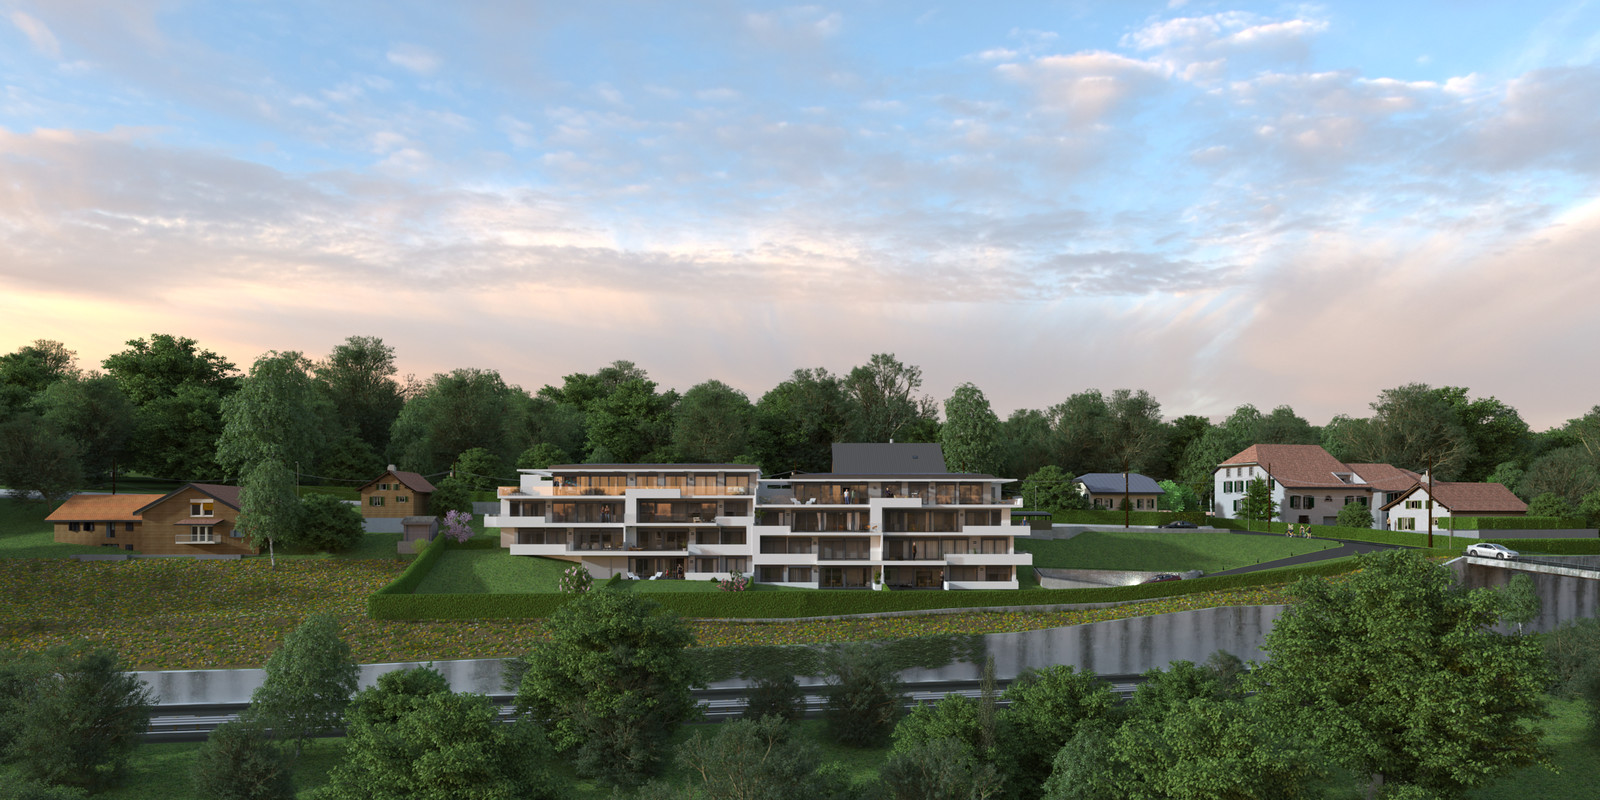 SketchUp 2018 + Thea Render  Project Lutry Thea Full work file 05 No Fog 2018 2-Scene 124 2 pt layers 161hdr   HDR by HDRI-SKIES found here: http://hdri-skies.com/shop/hdri-sky-161/